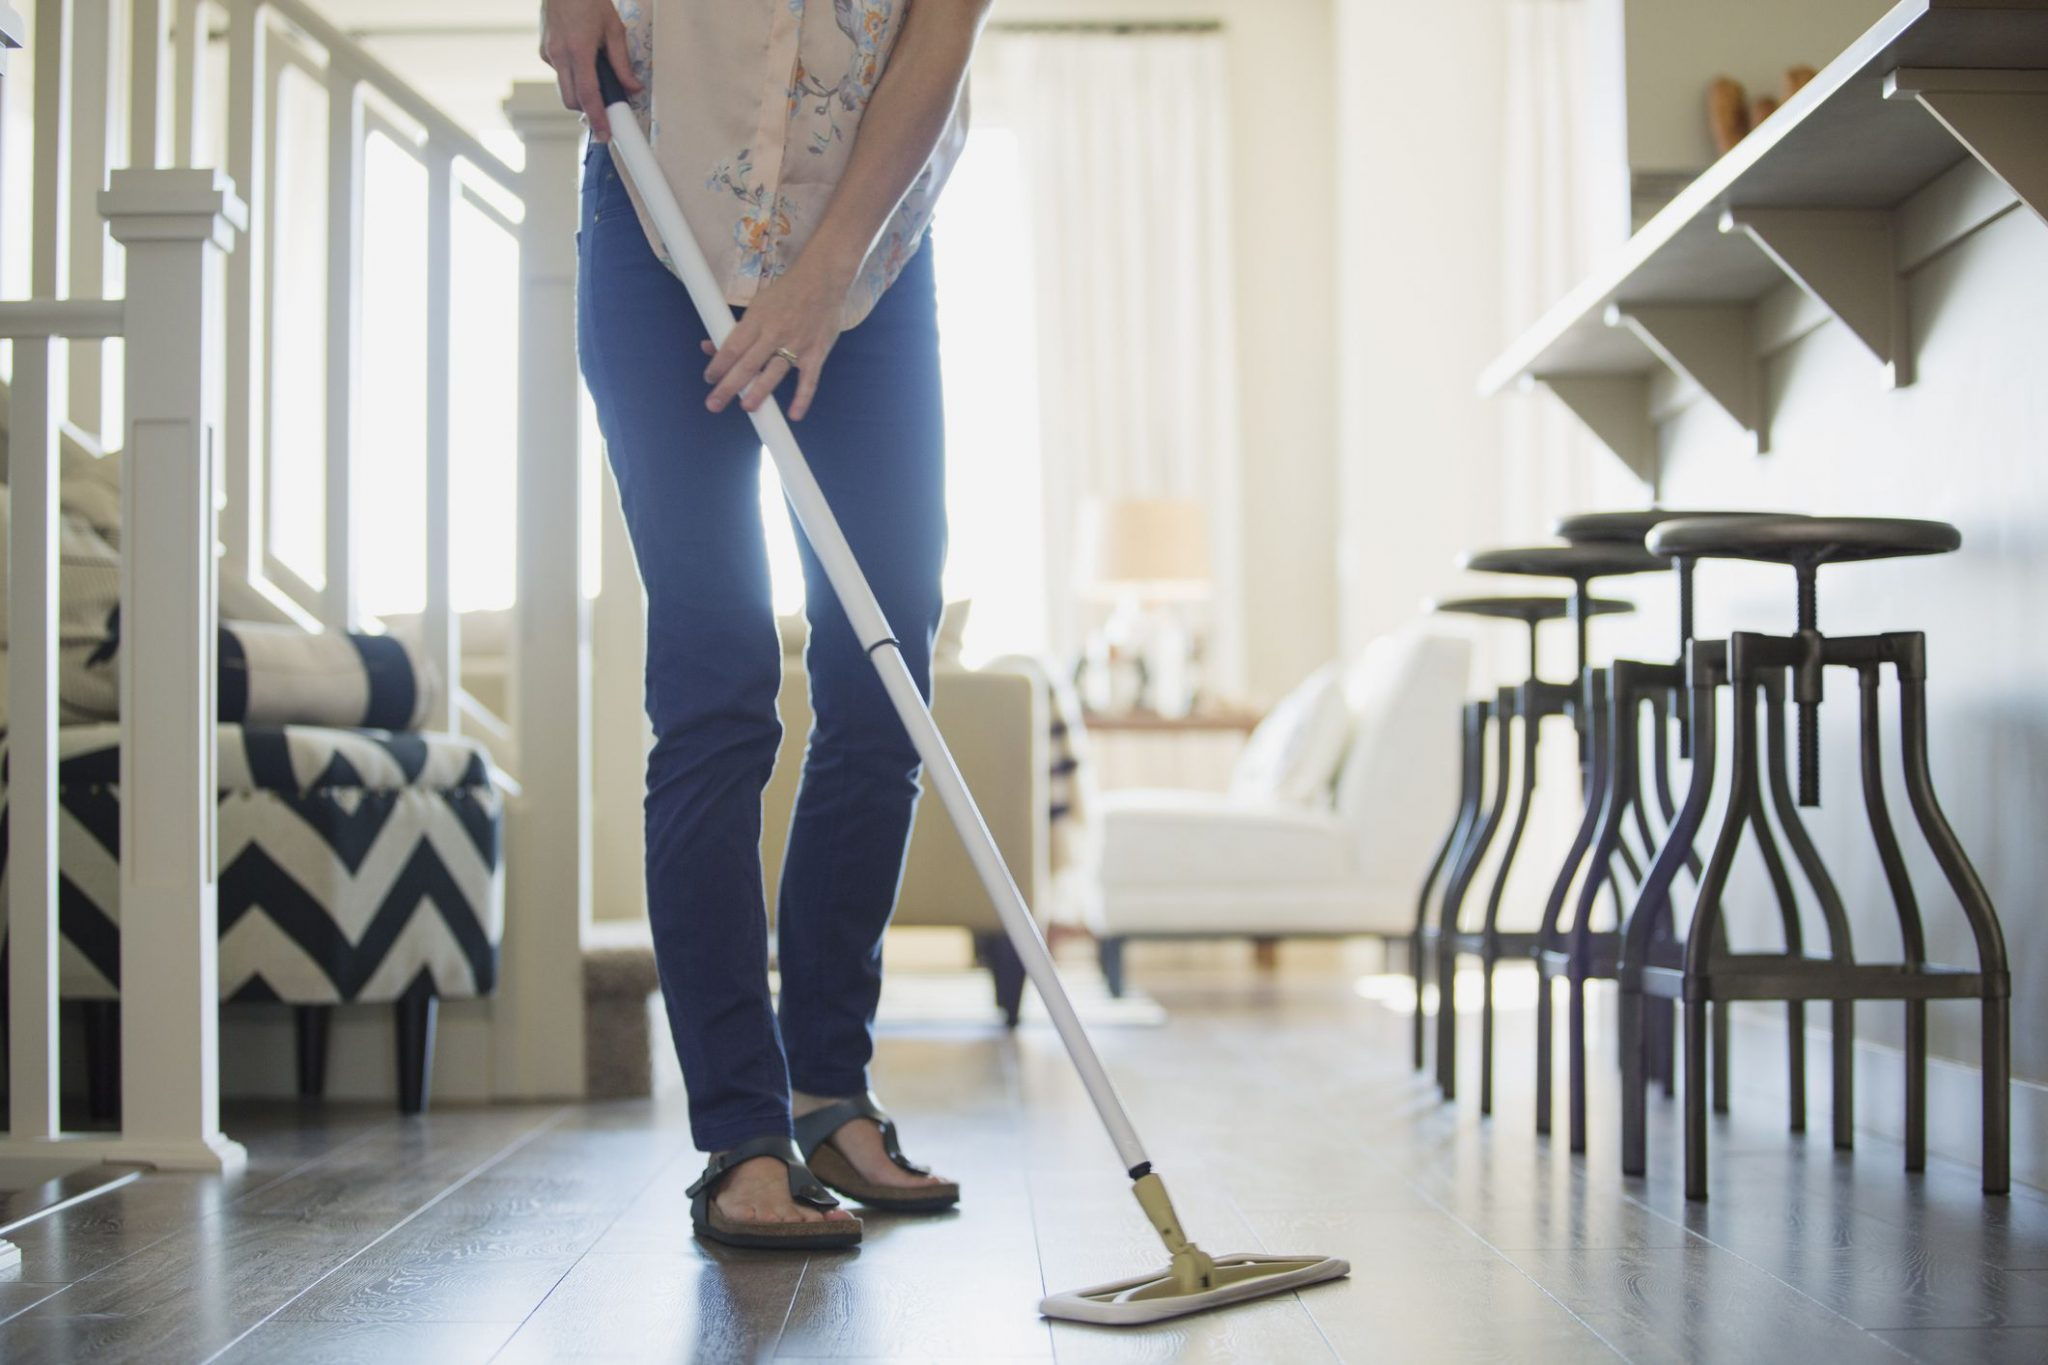 Old Fashioned Dust Mops